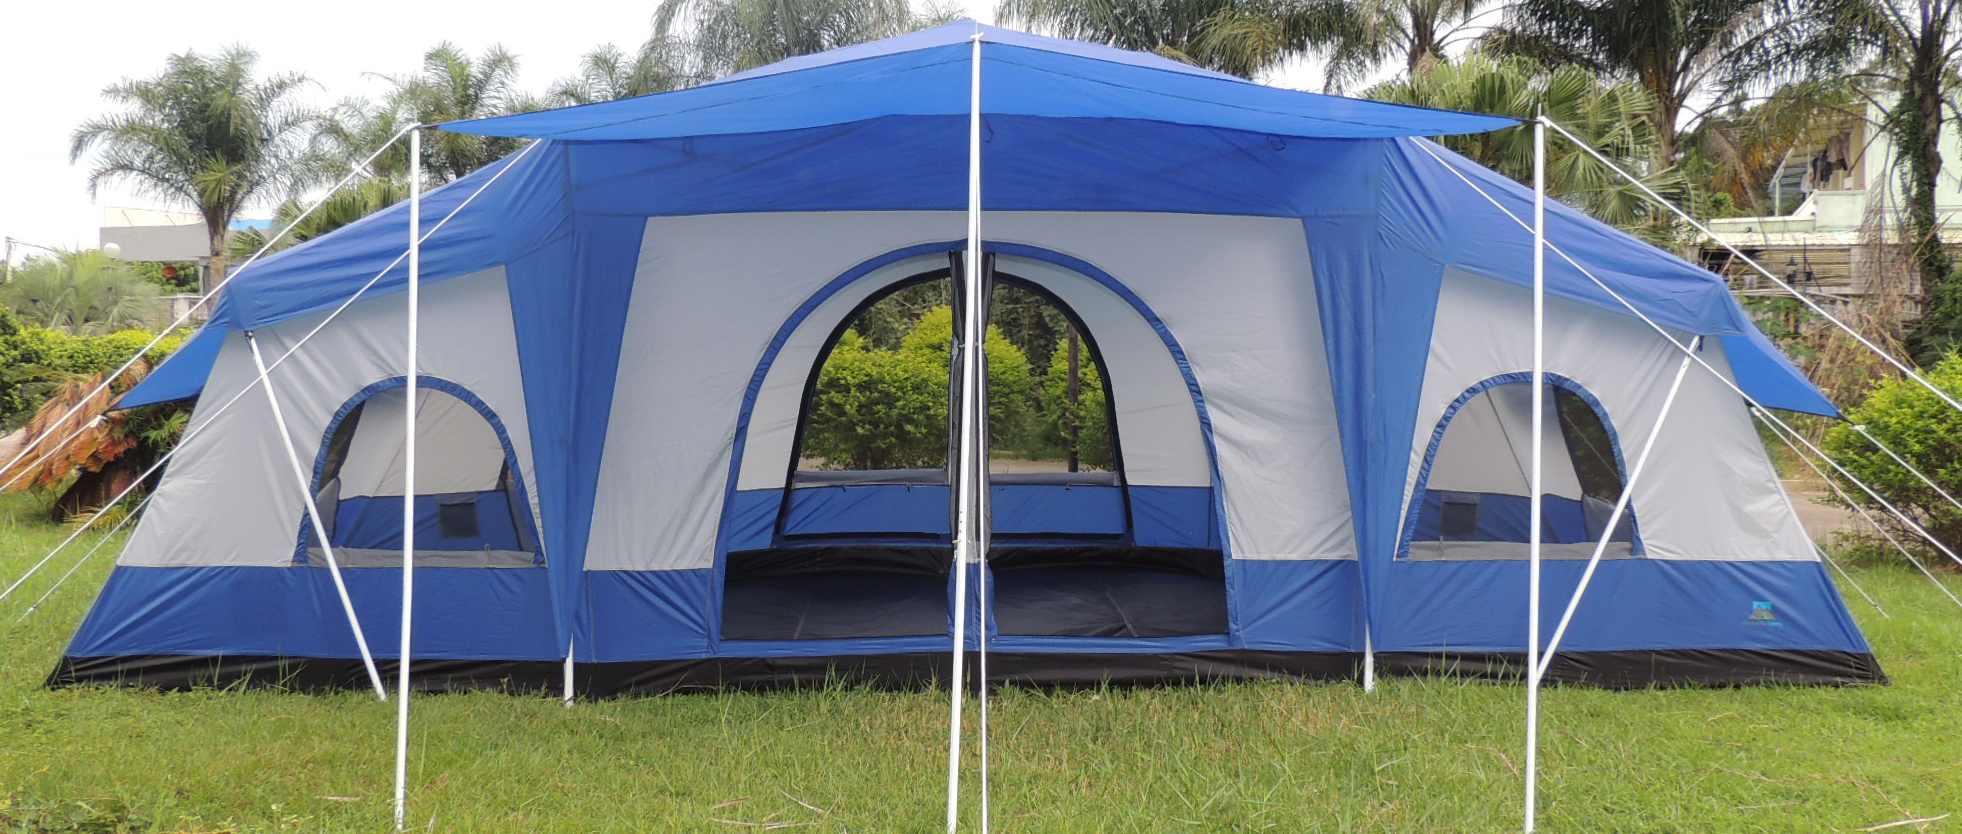 Cabin Tent Deluxe Four Room Front View